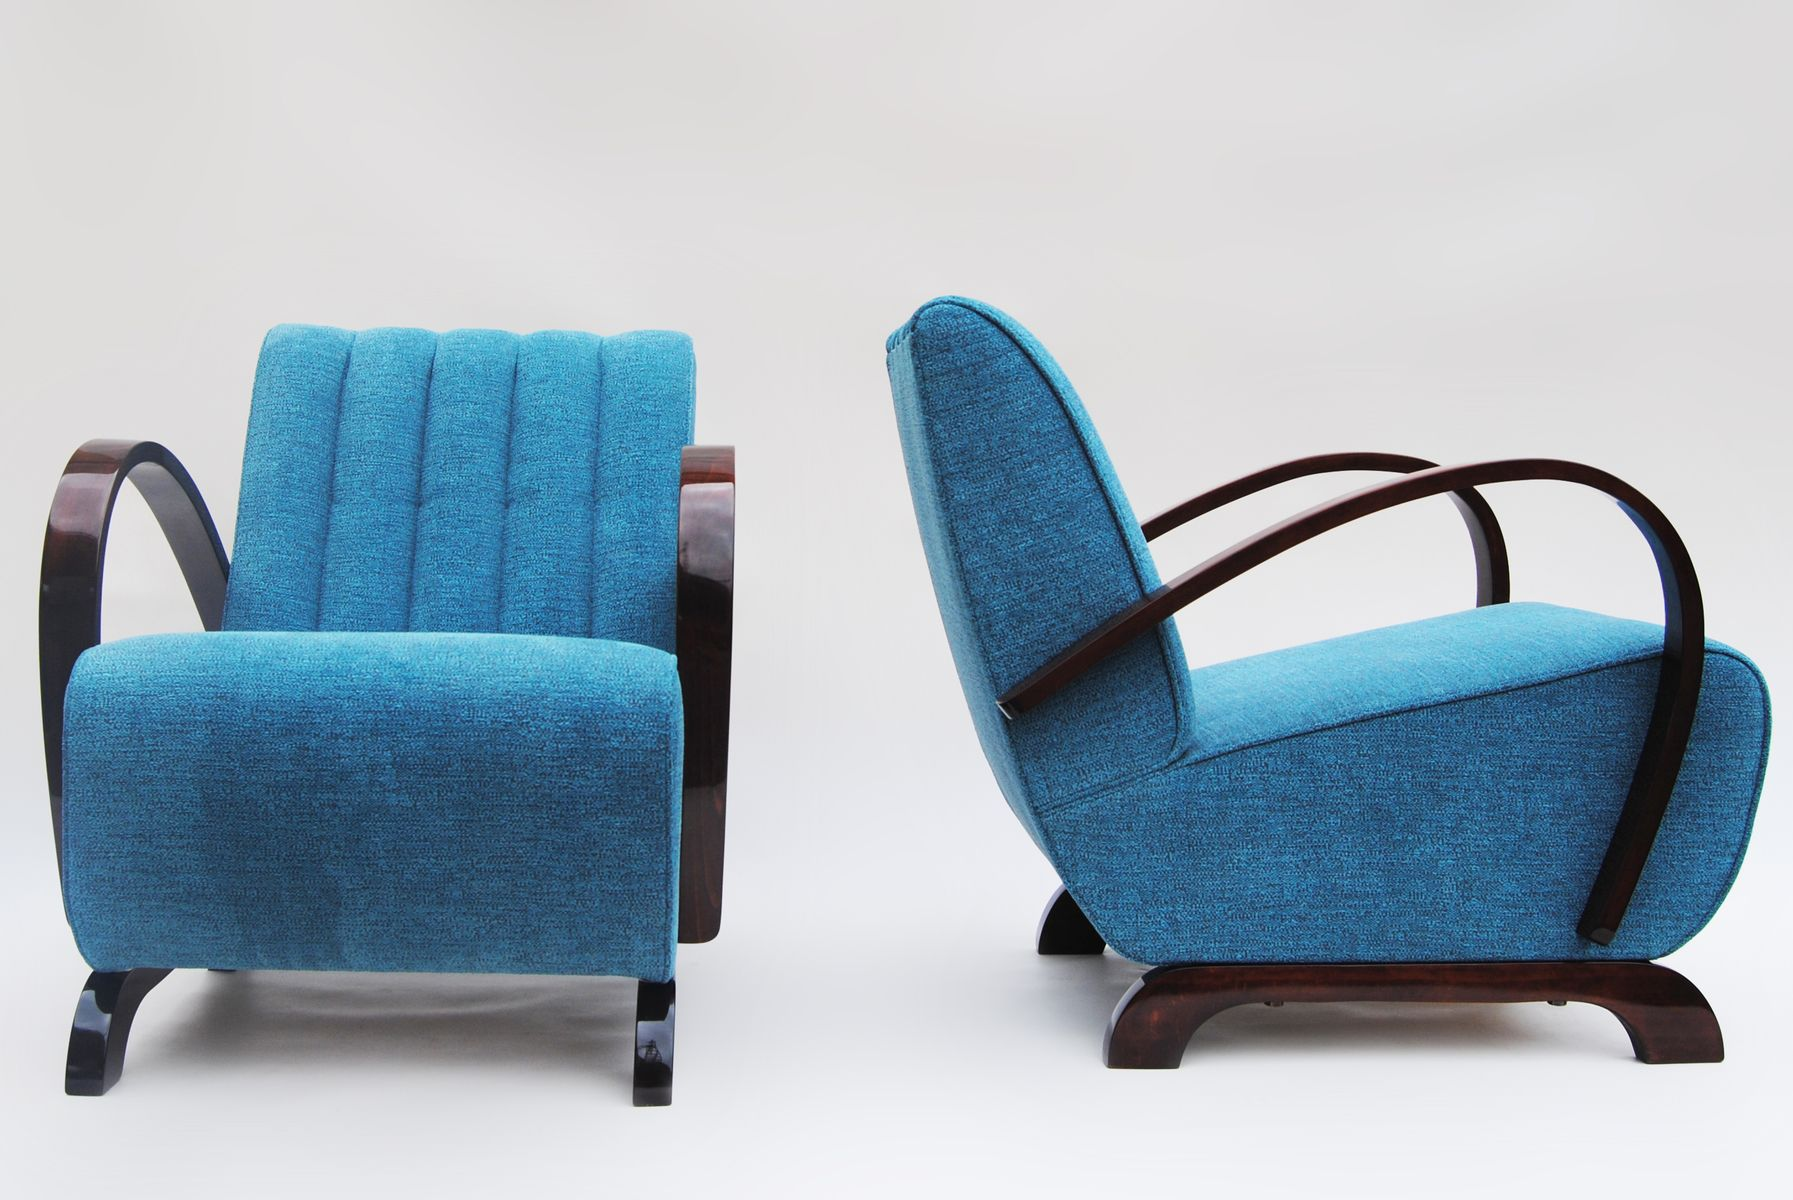 Vintage Blue Armchairs by Jindřich Halabala Set of 2 for sale at